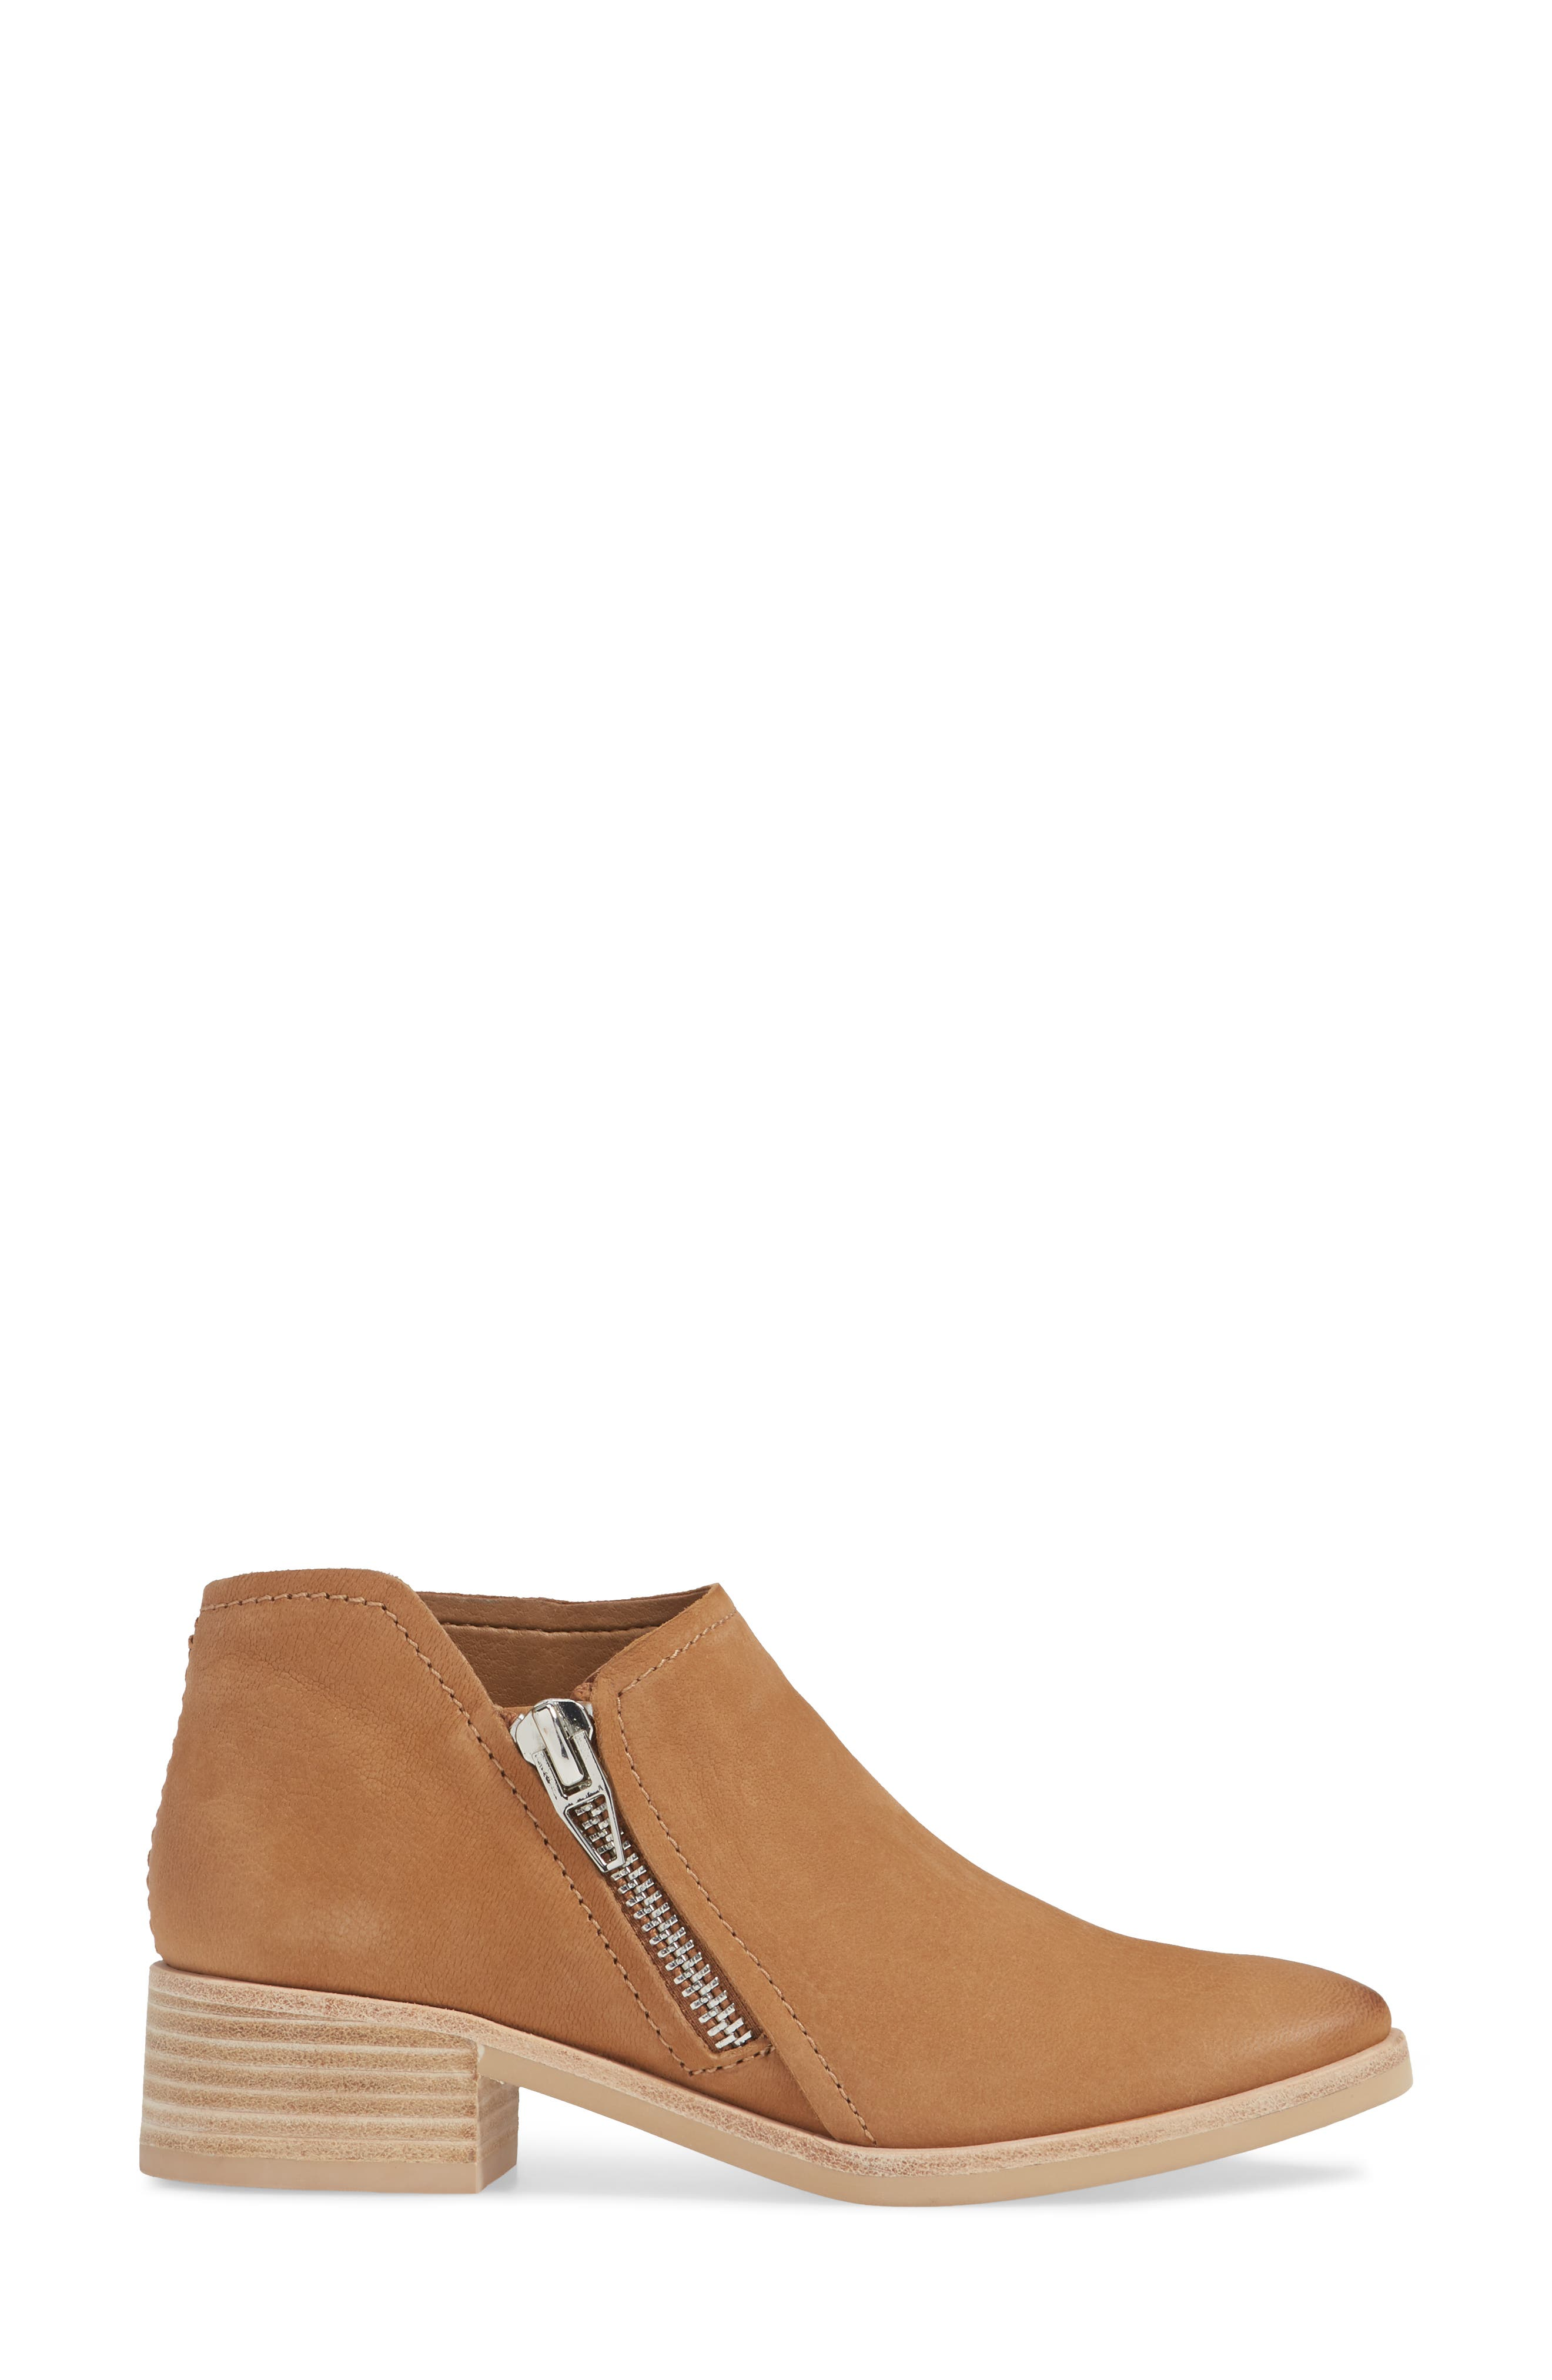 Trent Bootie,                             Alternate thumbnail 3, color,                             TAUPE